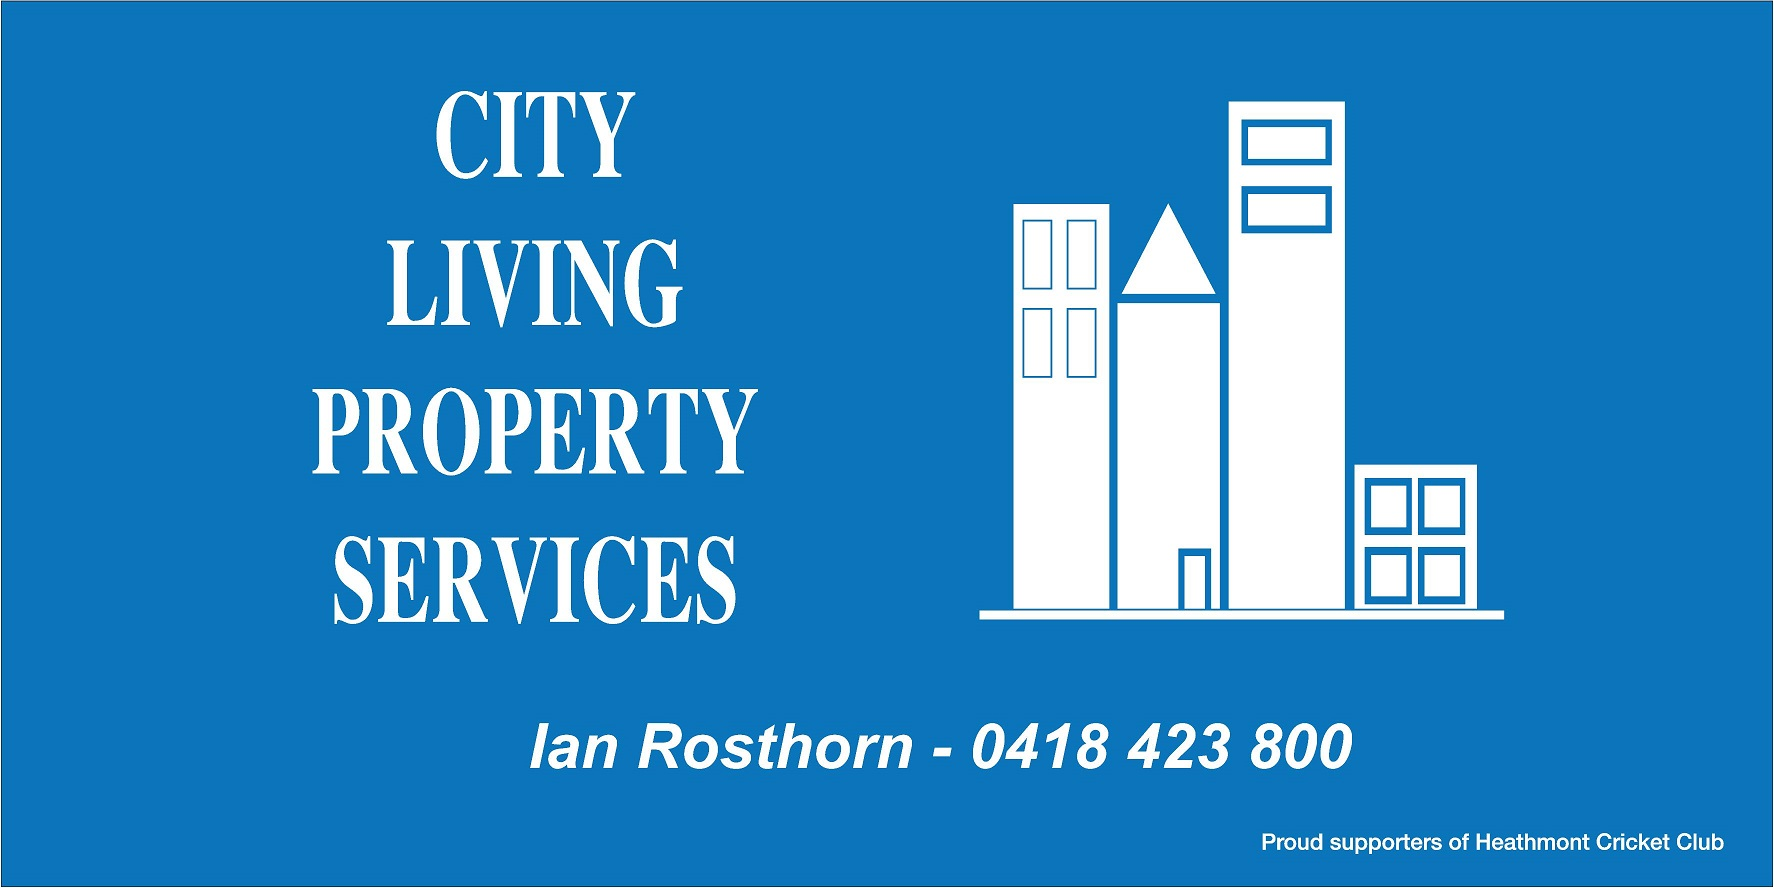 City Living Property Services